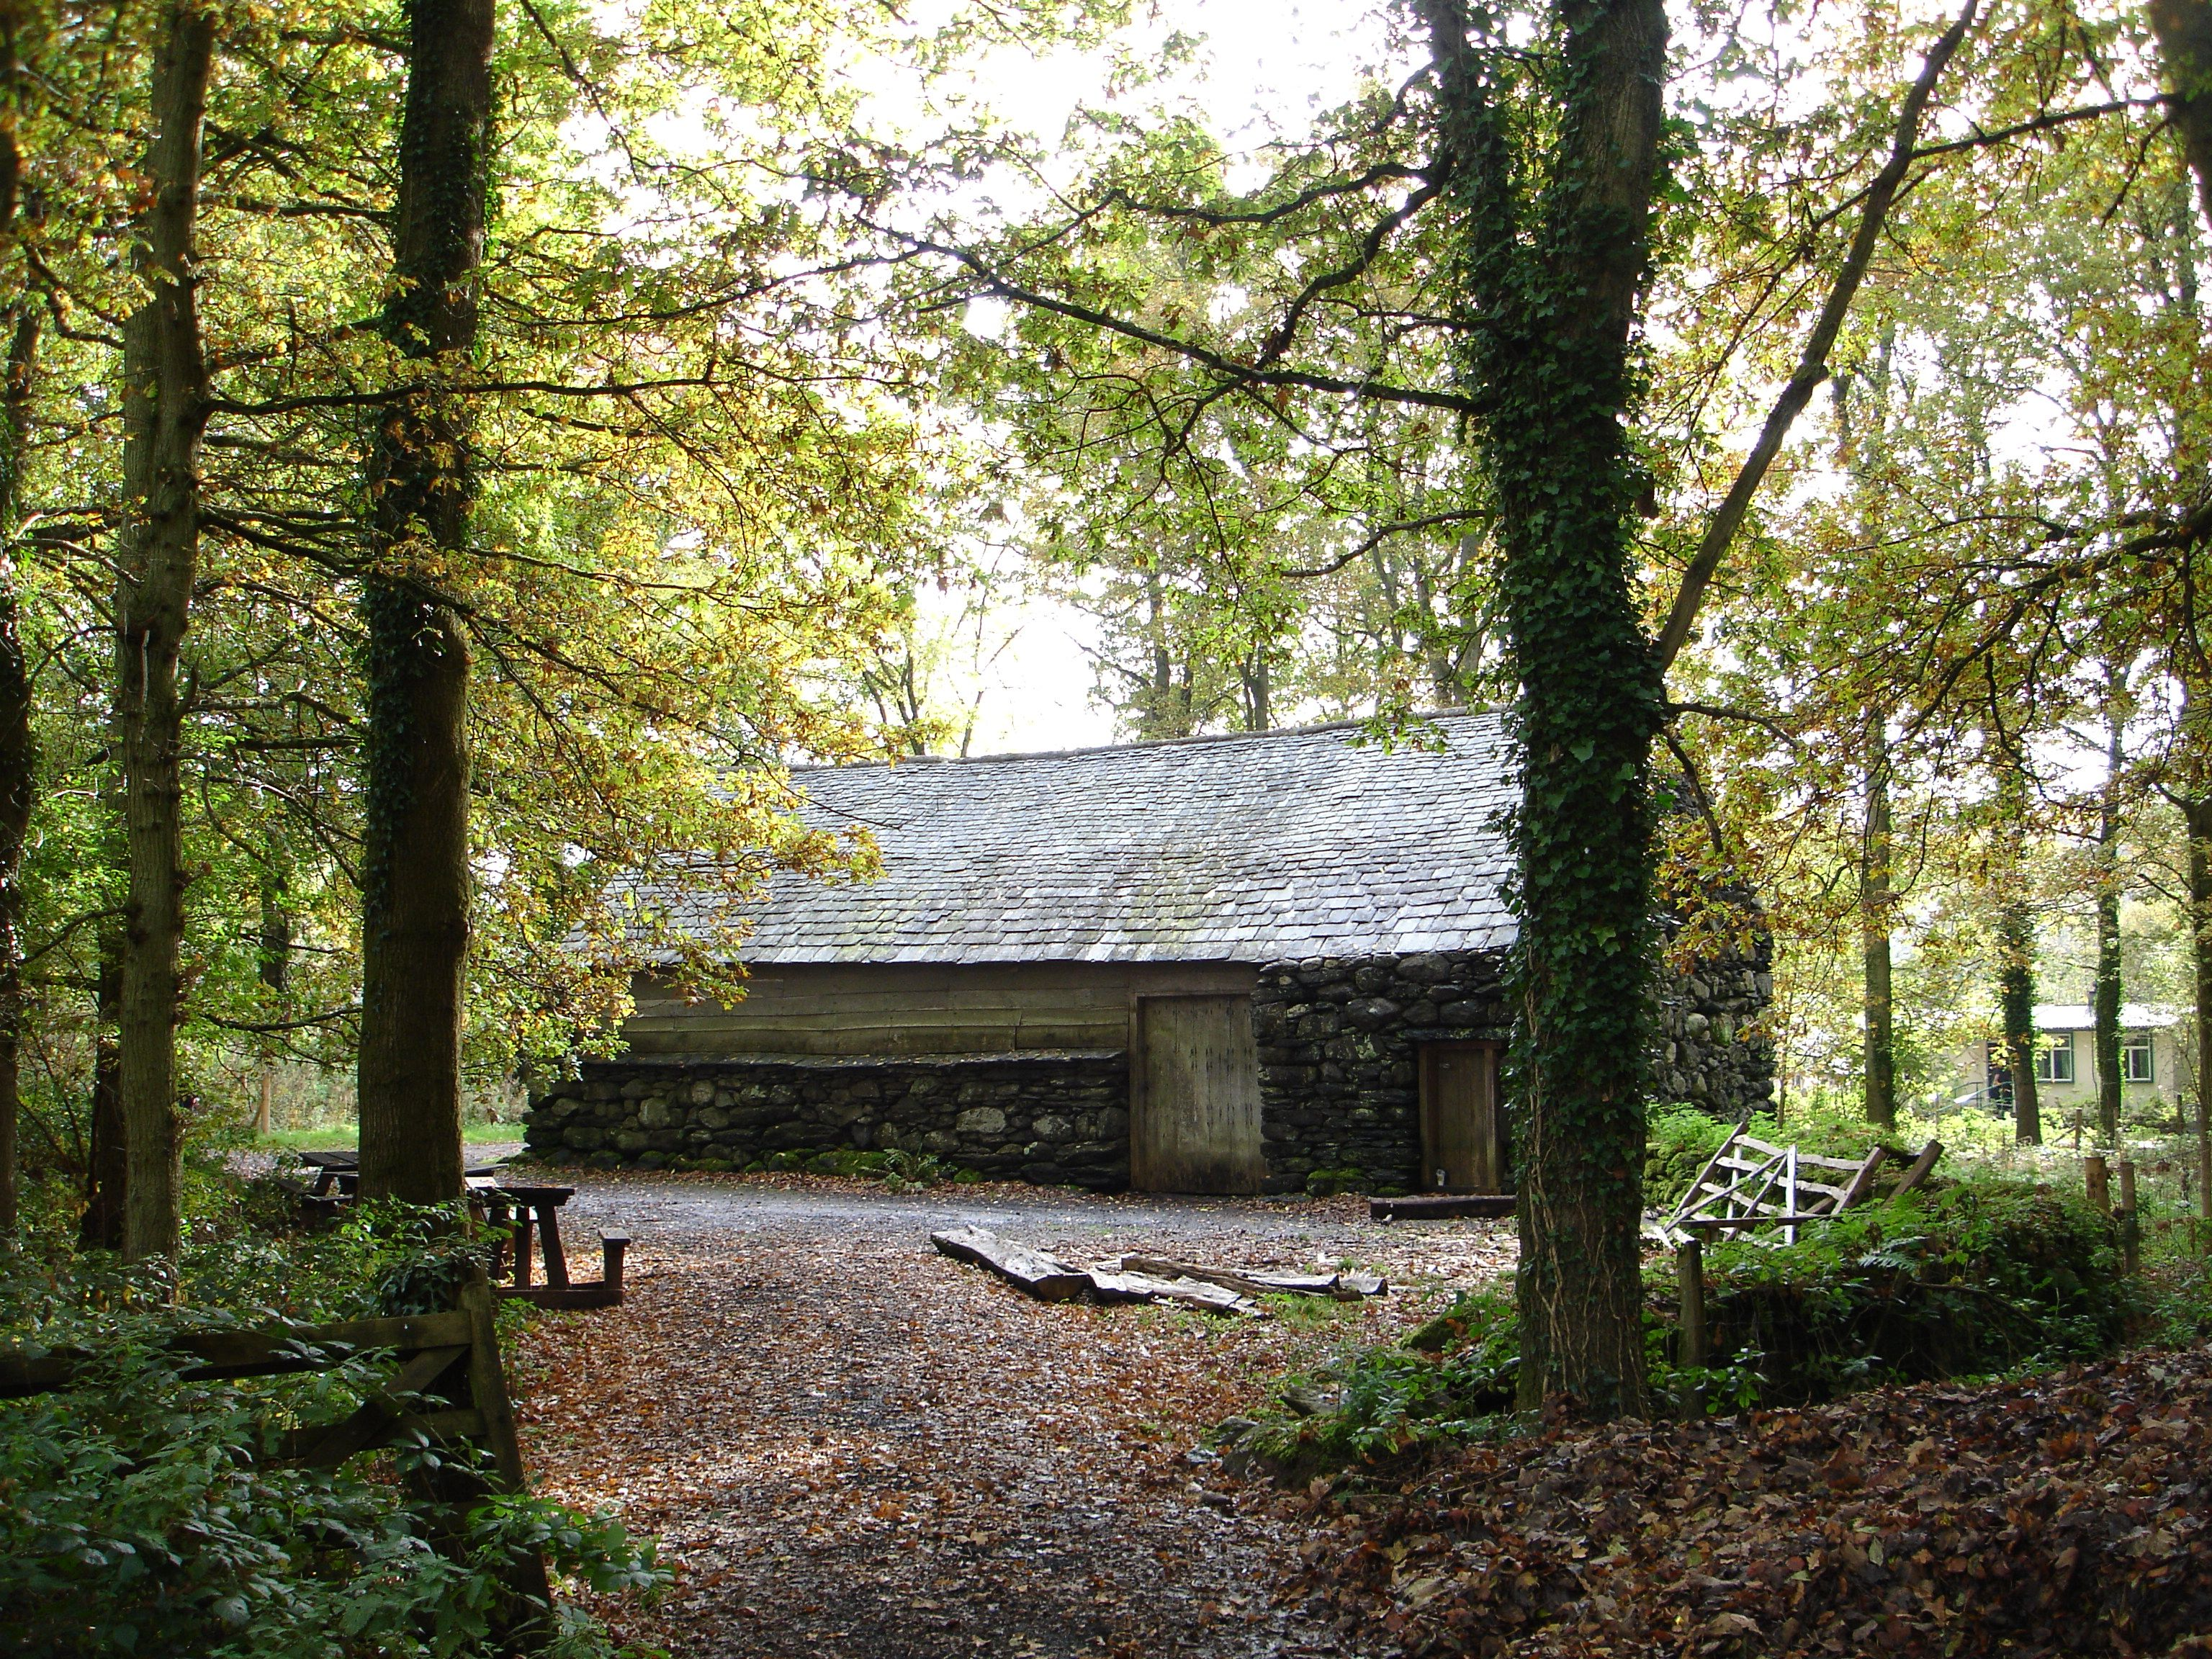 Hendre-wen Barn at St Fagans National Museum of History